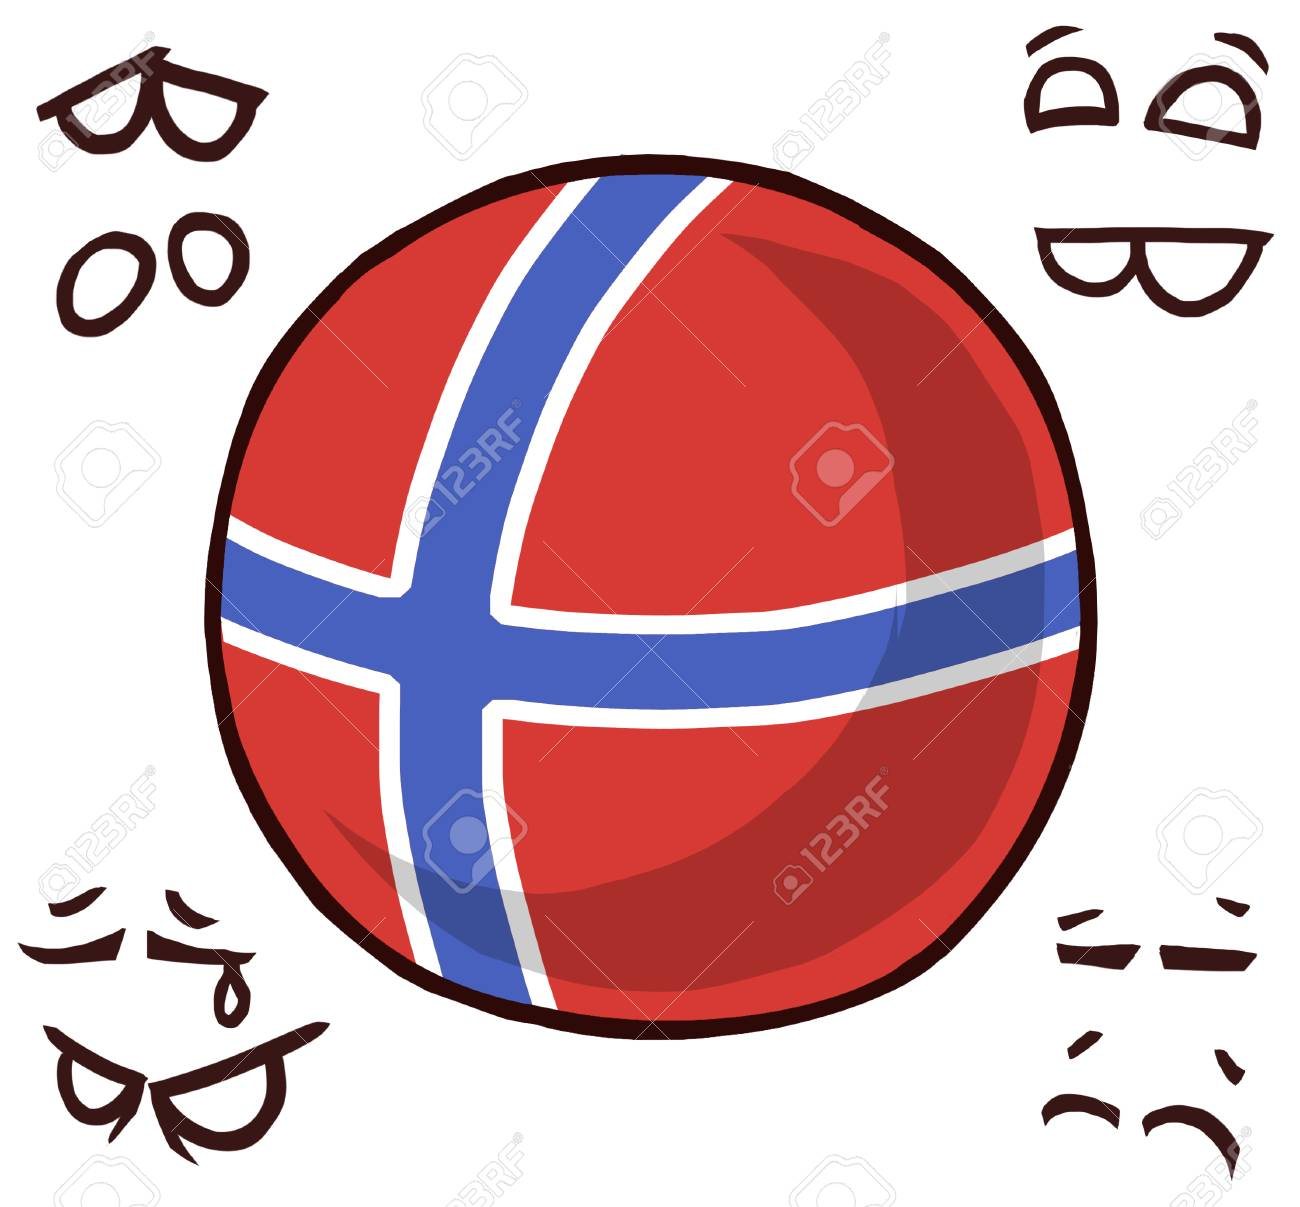 norway country ball - 110727340